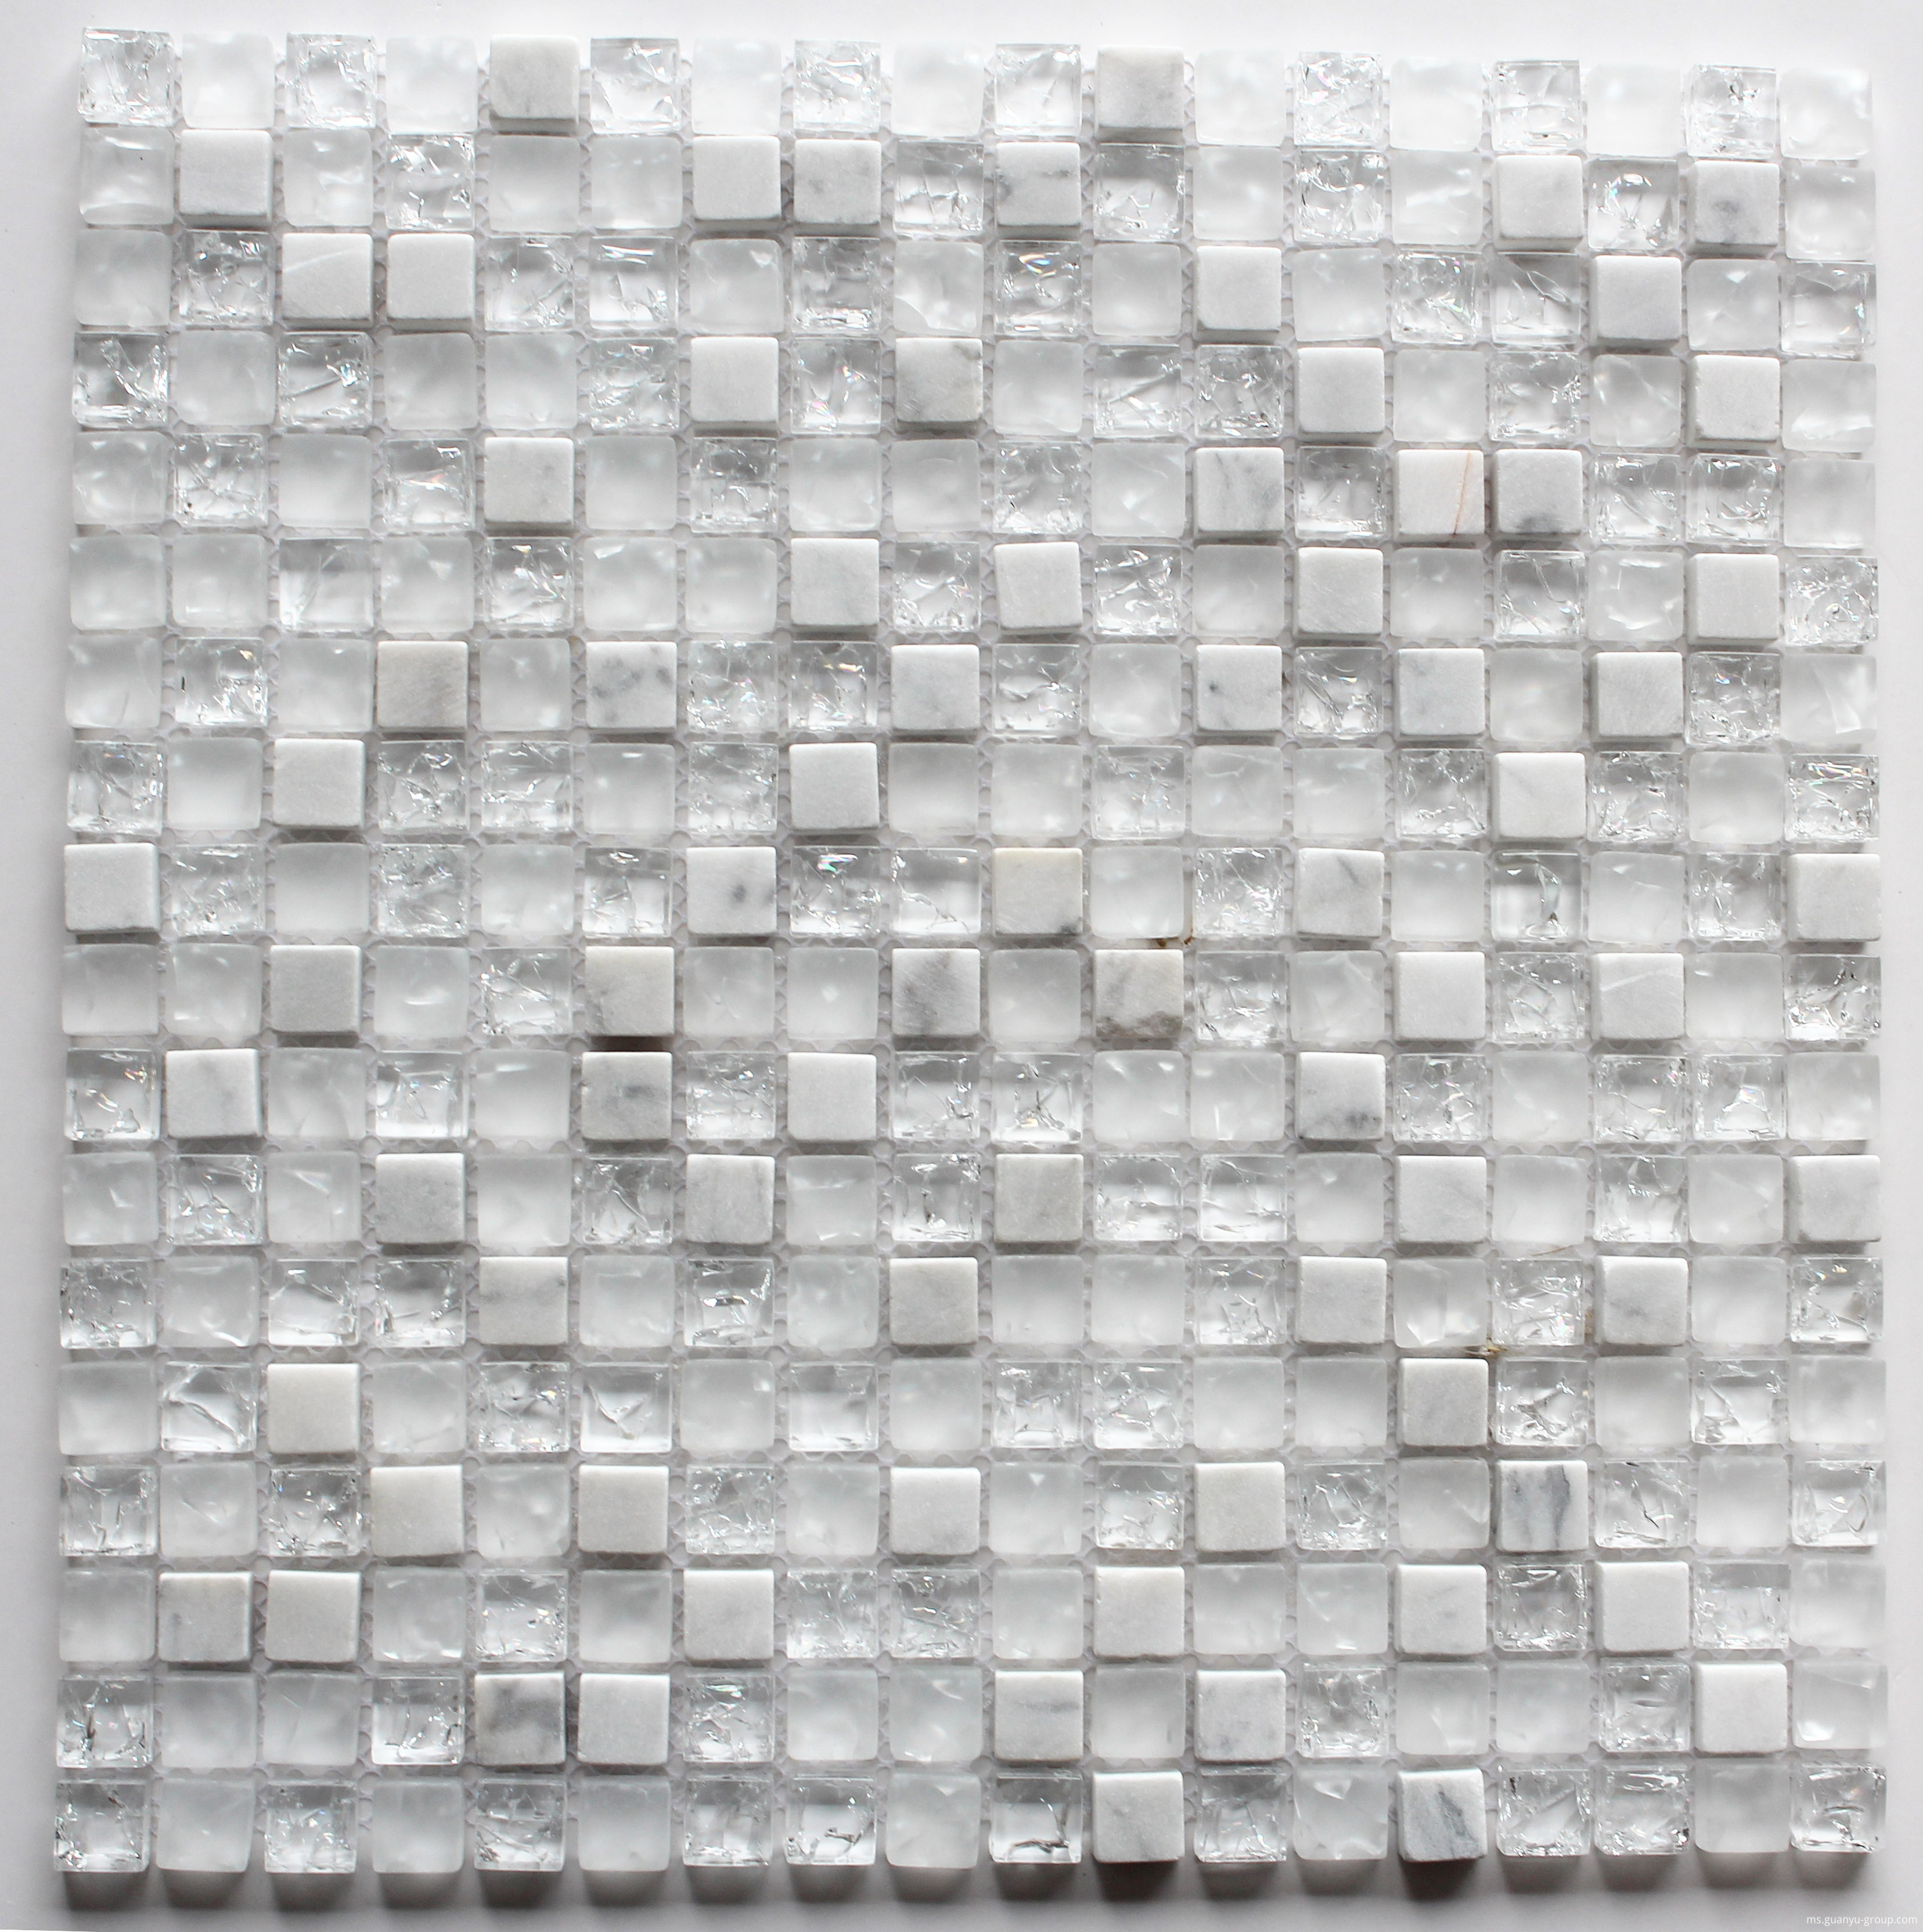 Pure White Cracked Glass Mixed Stone Mosaic